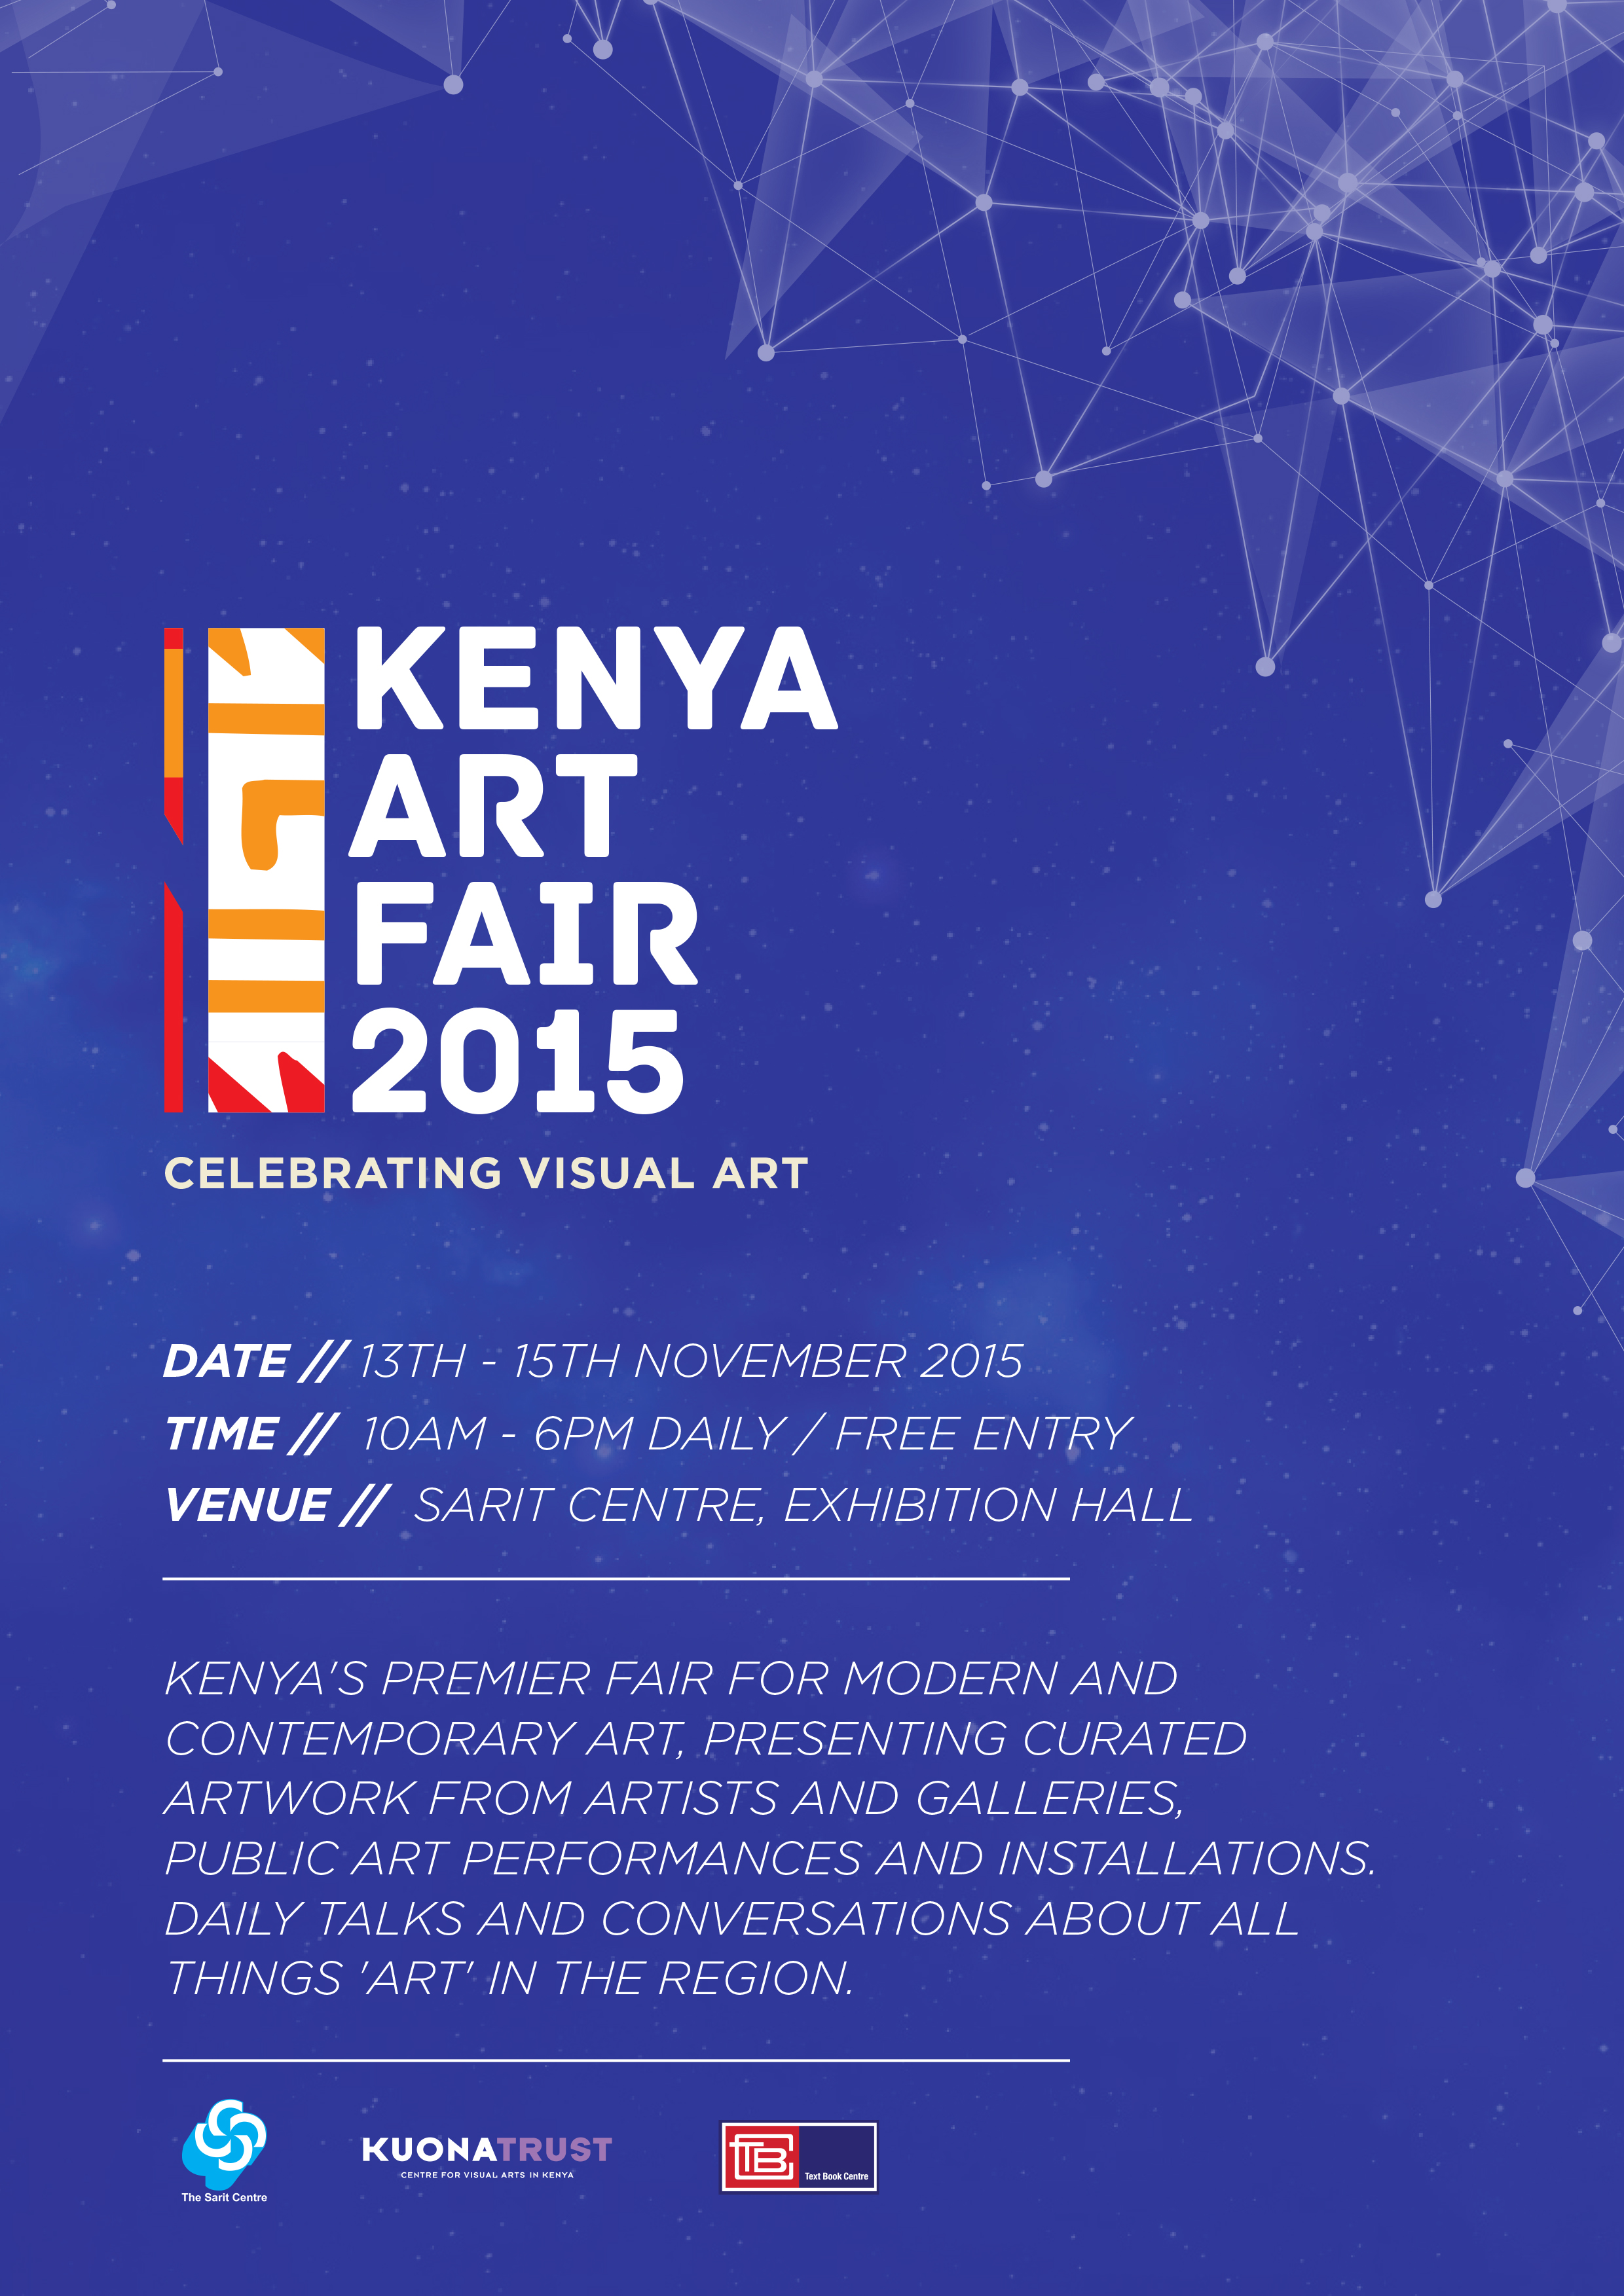 The Kenya Art Fair Returns for its Second Year - Mwende Ngao